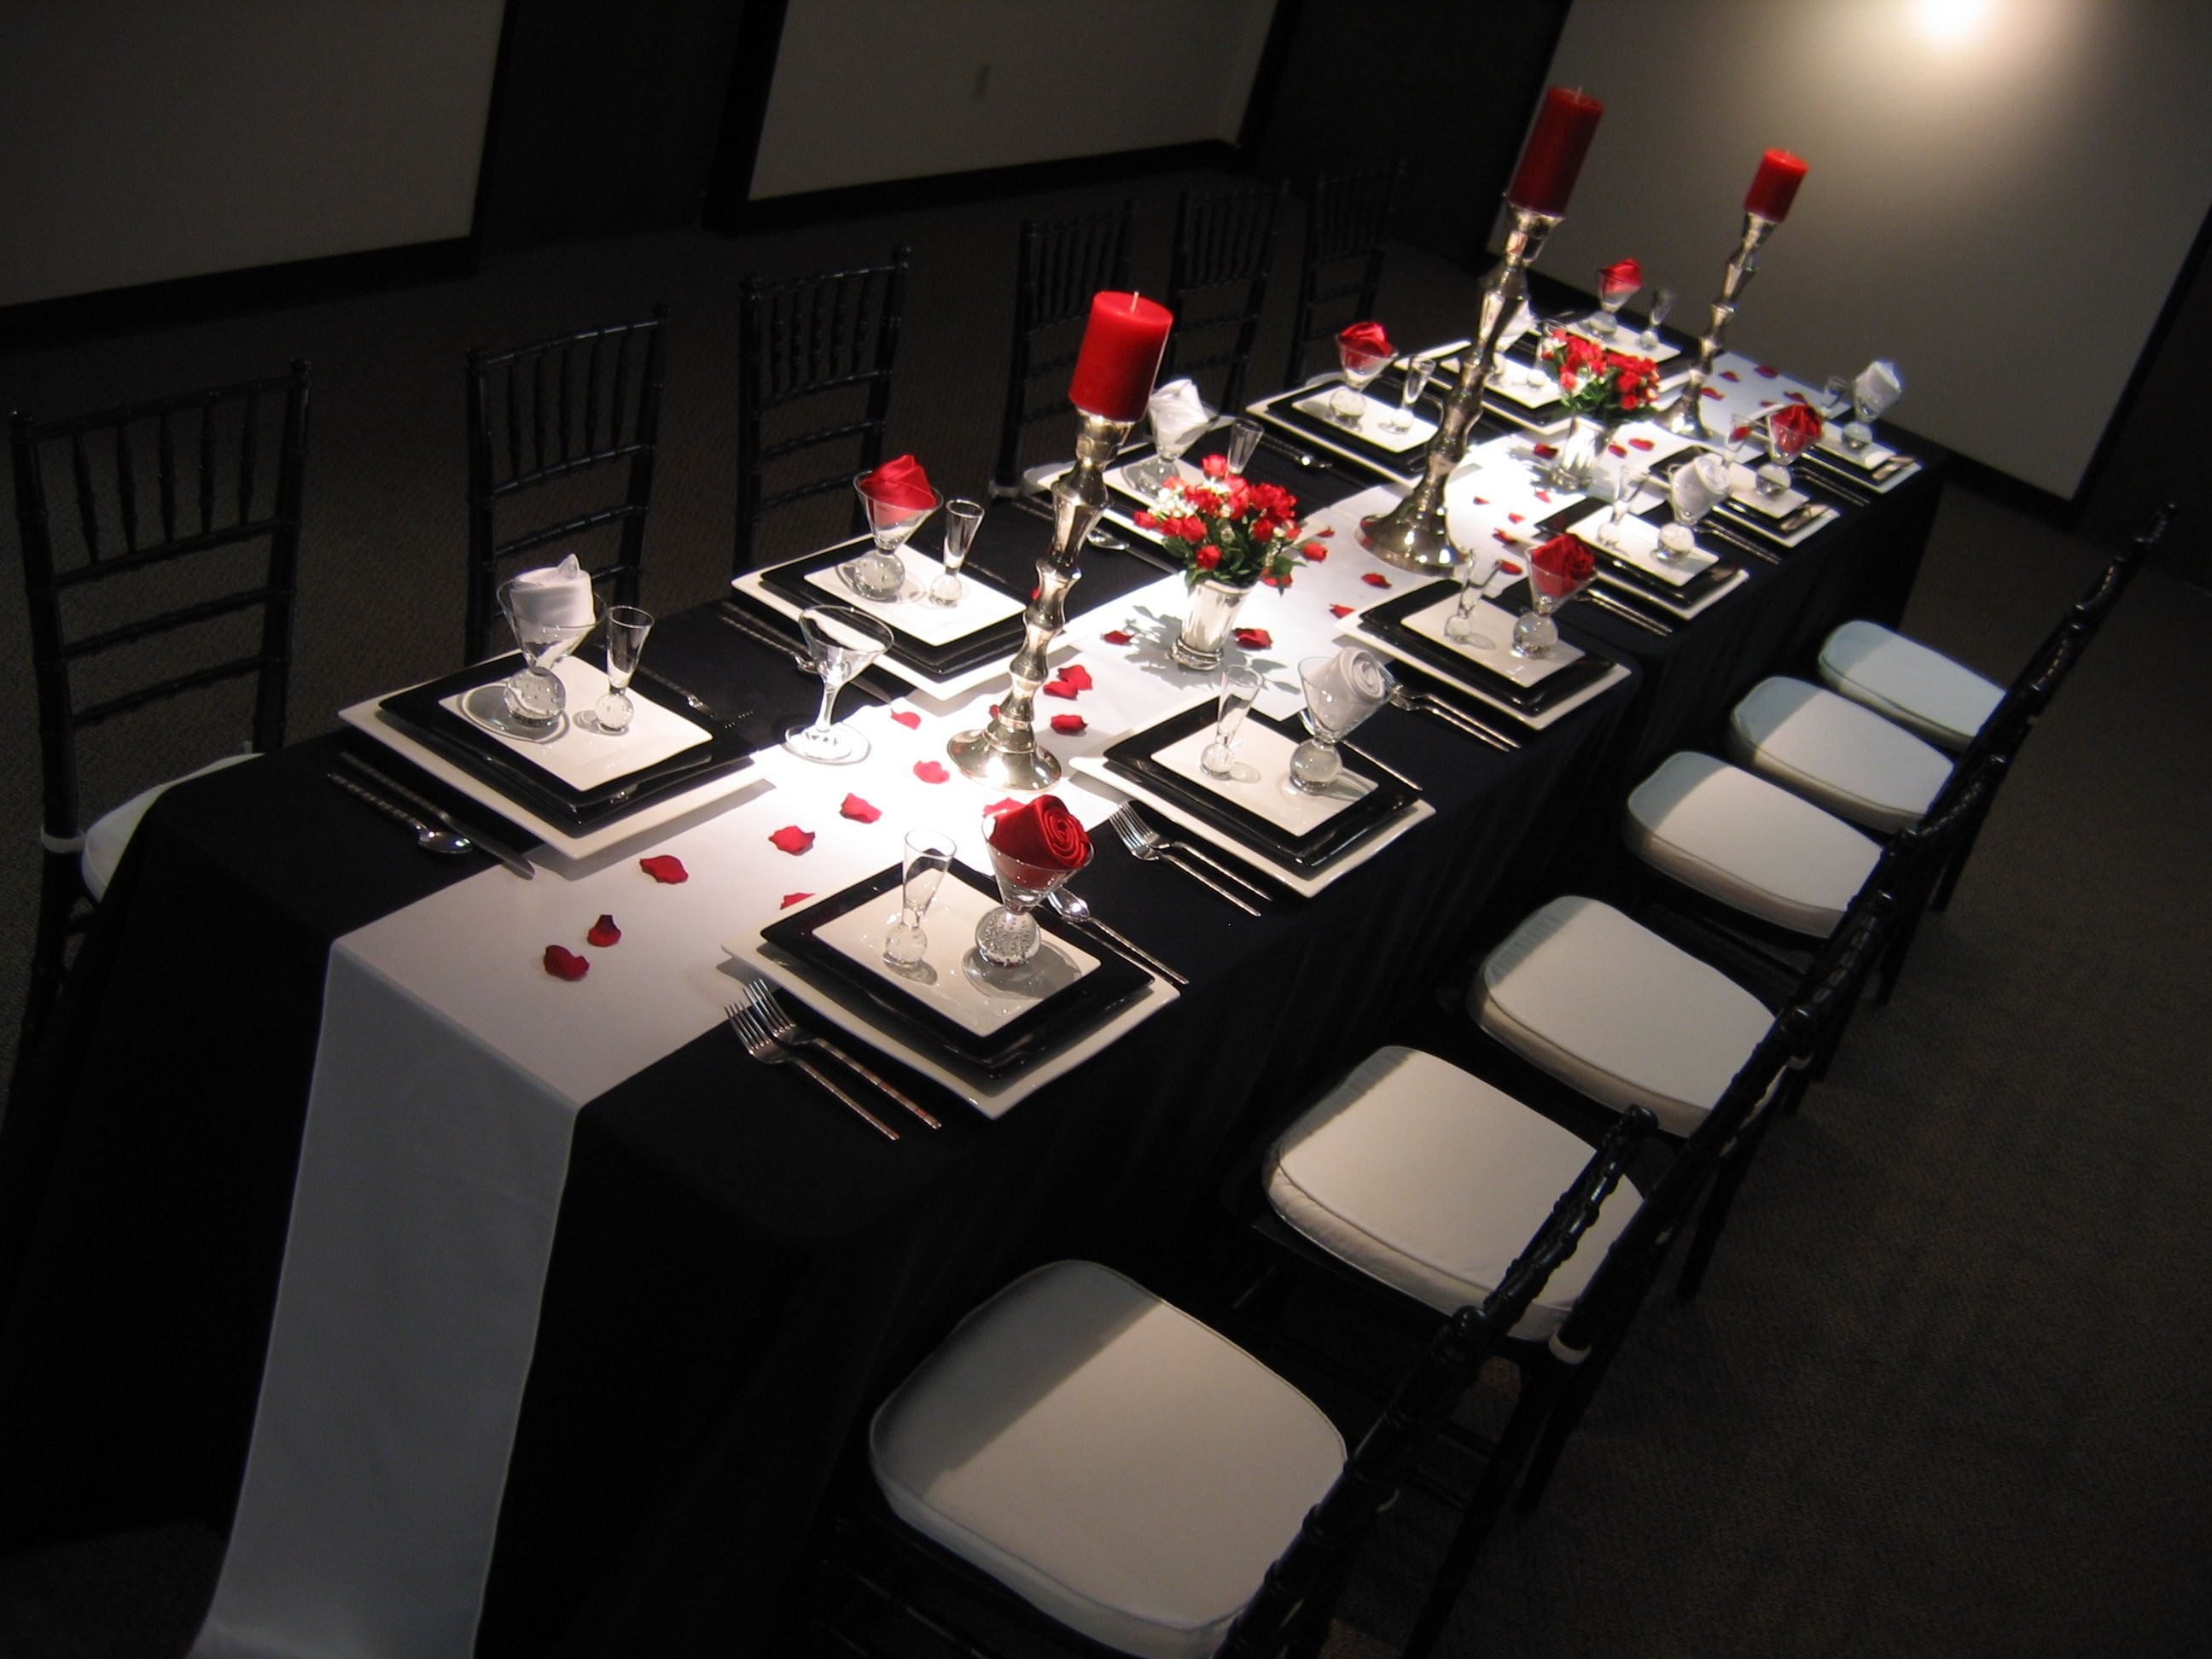 Black white red intimate table setting wedding & Black white red intimate table setting wedding | Wedding ideas ...